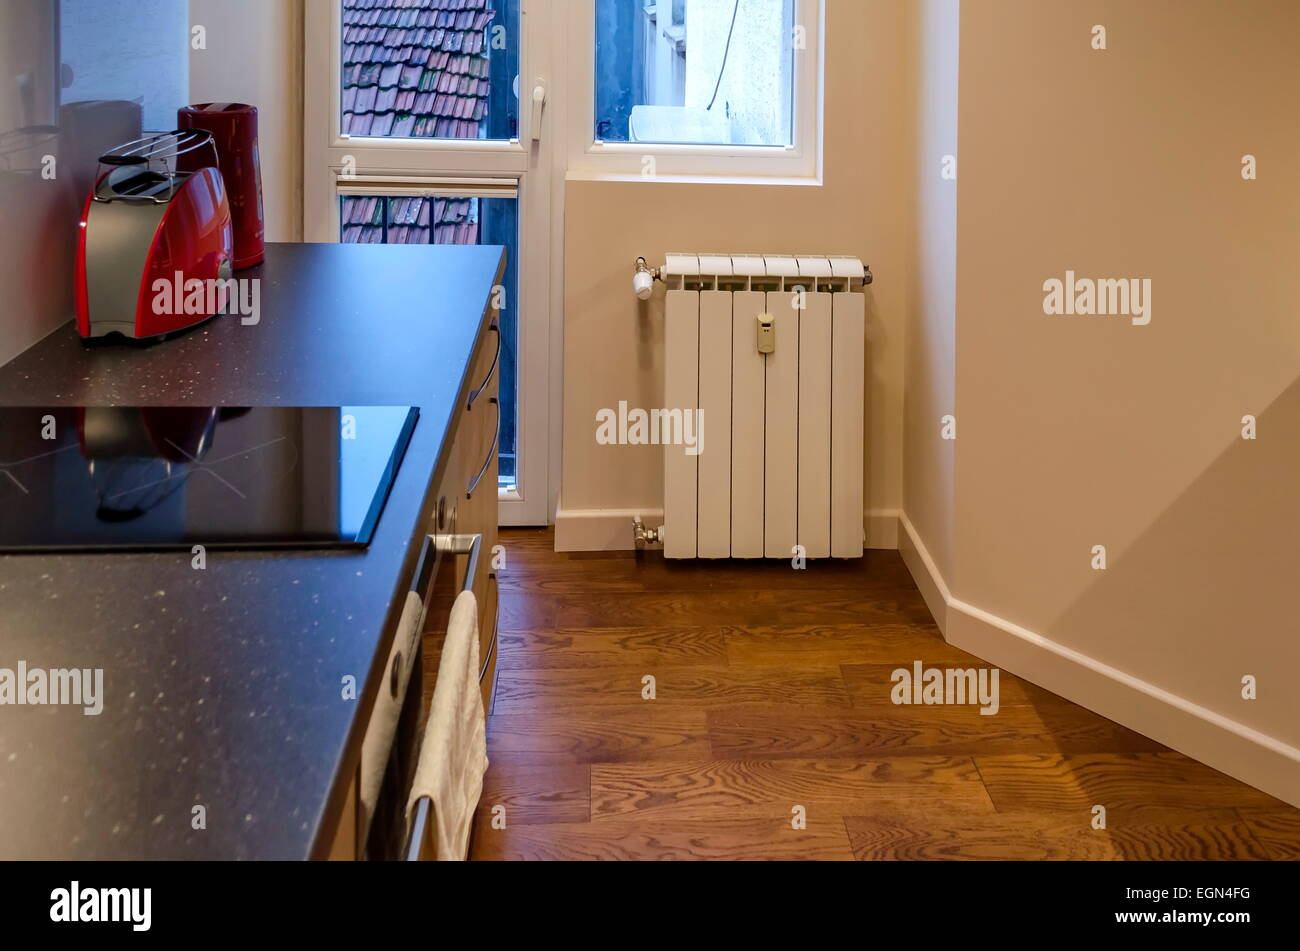 Part of kitchen and heating radiator - Stock Image